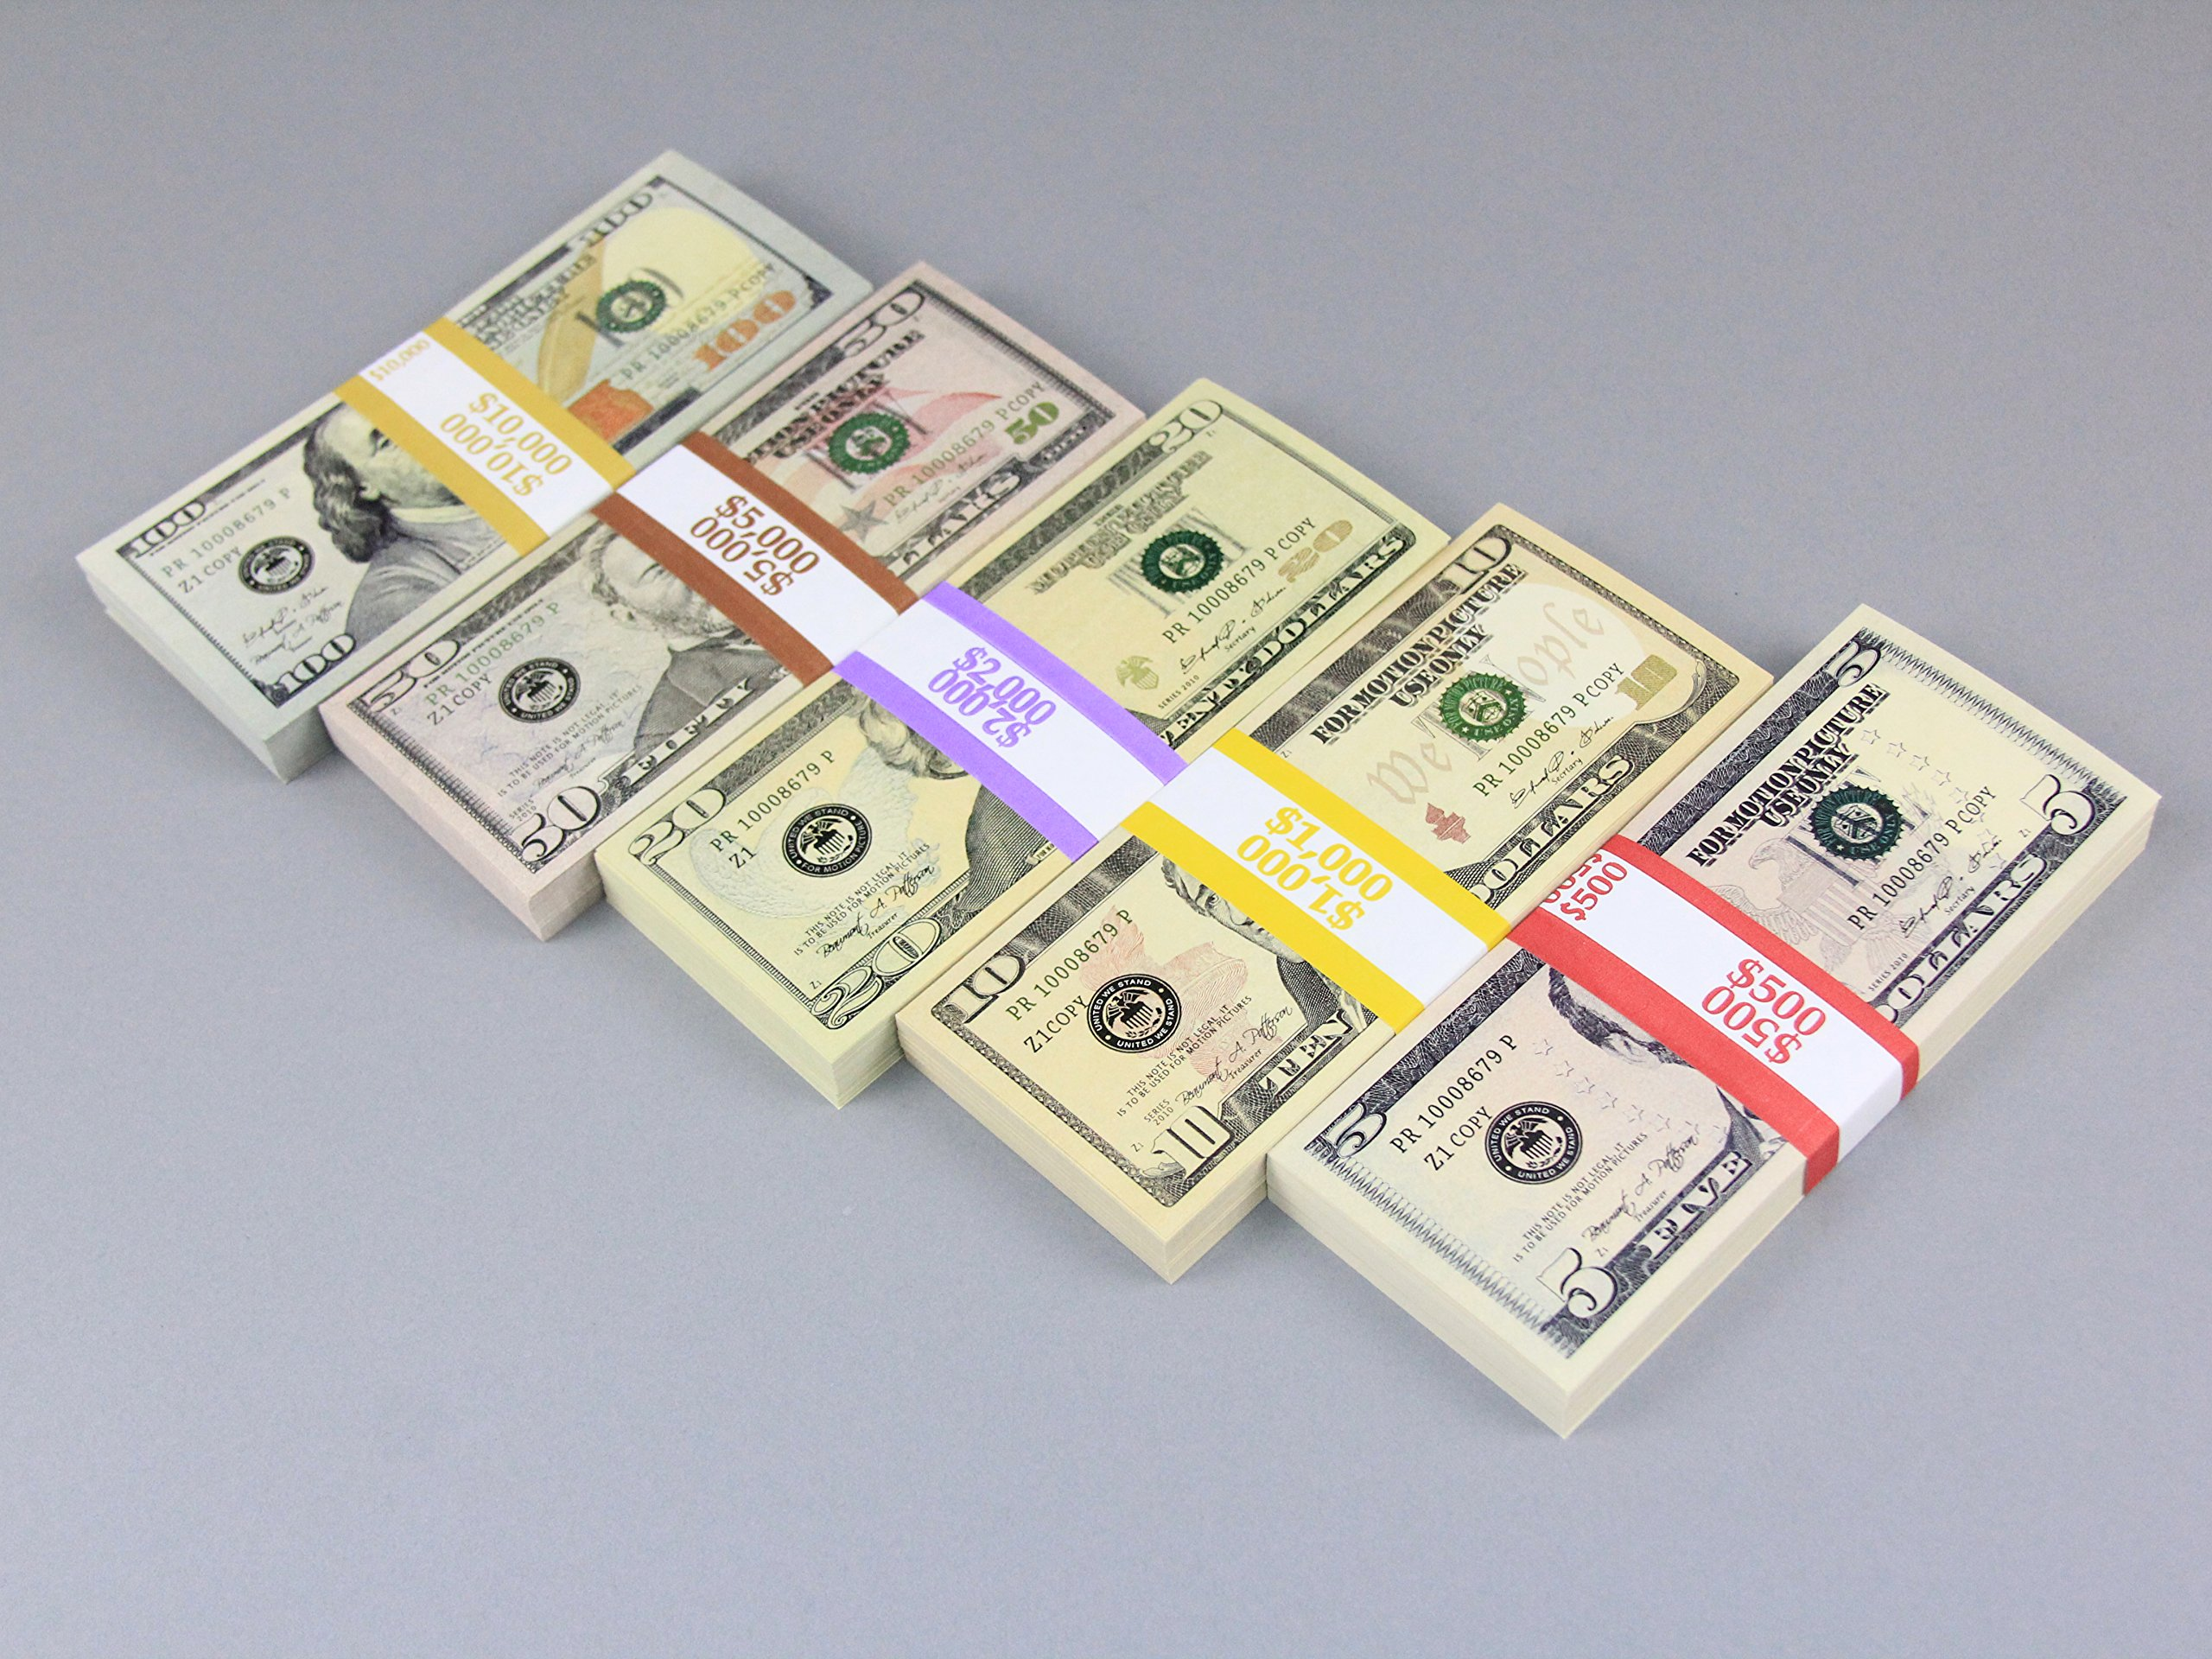 PROP MONEY Real Looking New Style Copy $18,500 Mixed FULL PRINT Pack for Movie, TV, Videos, Advertising & Novelty